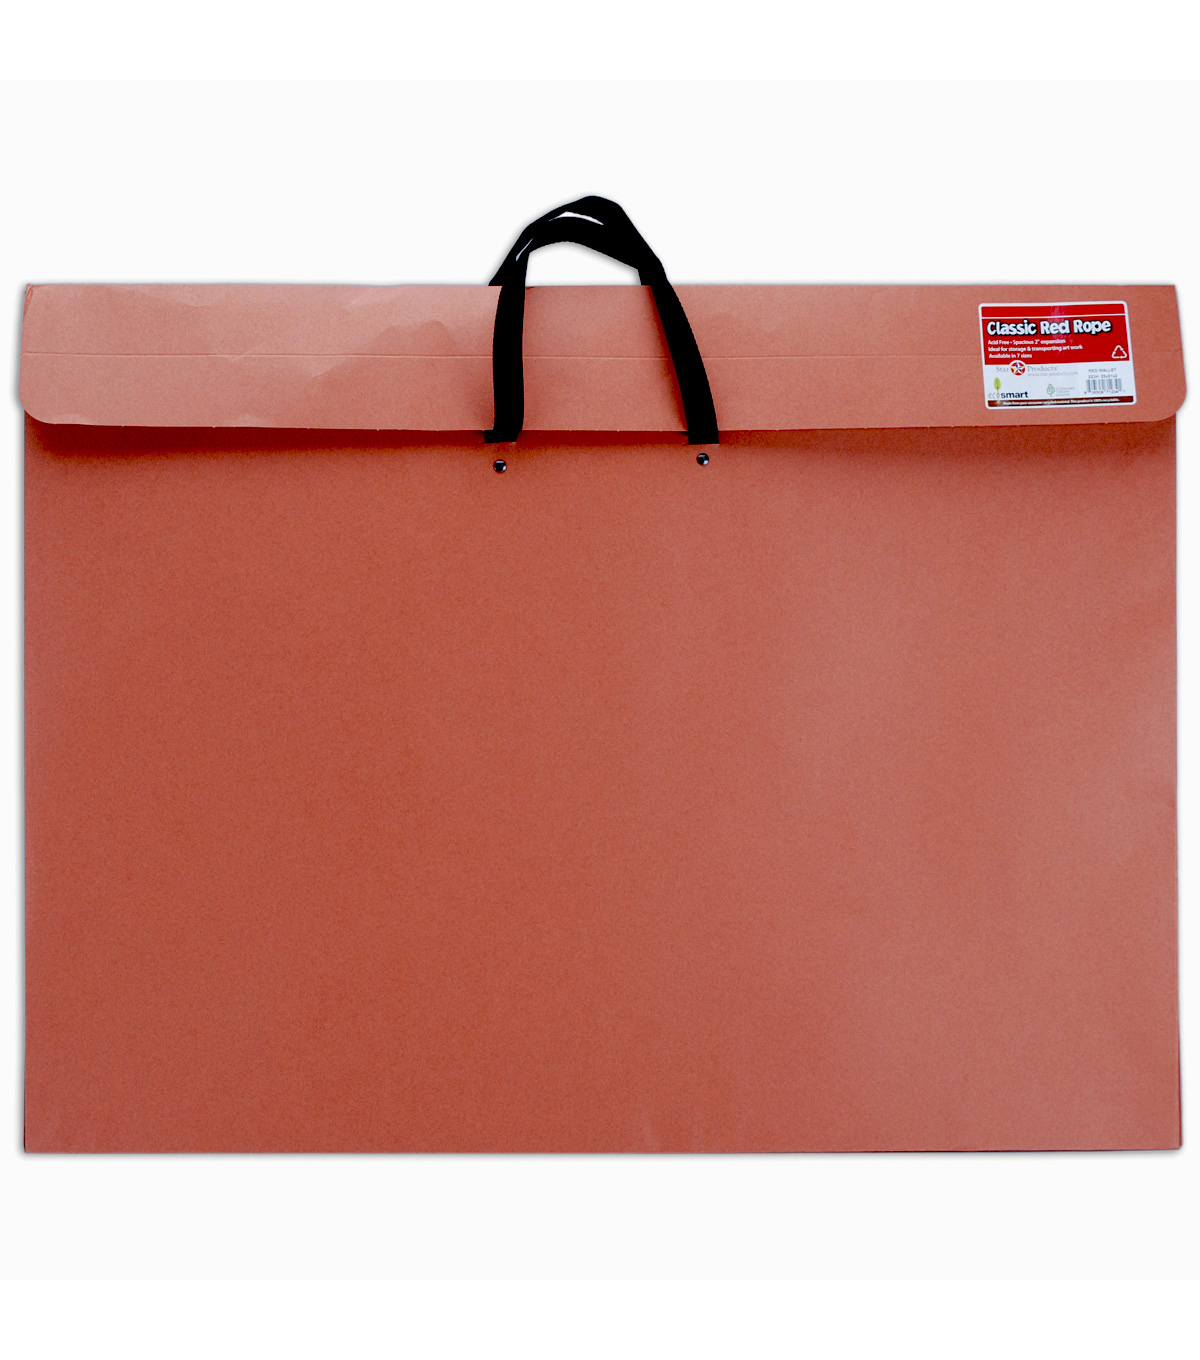 Red Rope Paper Portfolio W/Soft Handle 23\u0022x31\u0022-Red